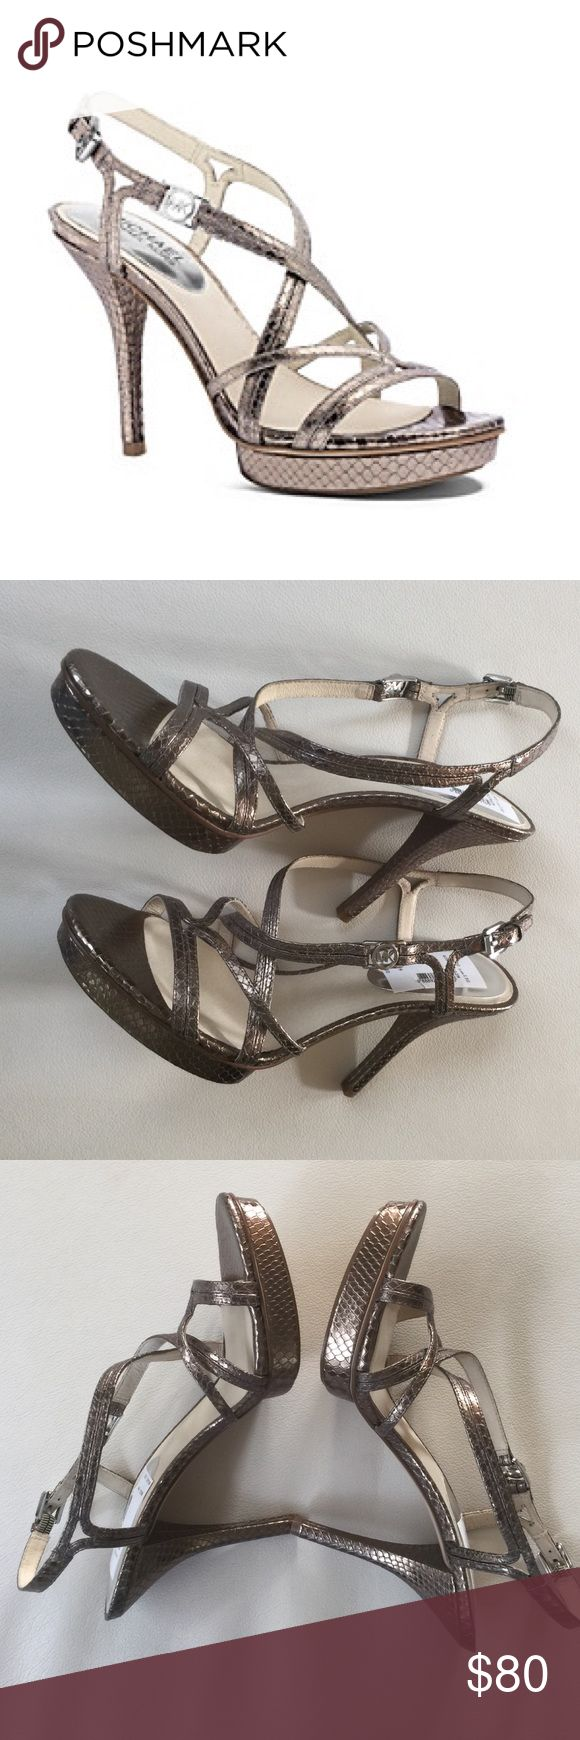 Micheal Kors Silver Dress Sandal Michael Kors Cicely Dress Sandal. NWOB. Gorgeous metallic, leather upper sandal with silver hardware. These are listed as a size 10 but these run a size small. I would say a size 9. Michael Kors Shoes Sandals